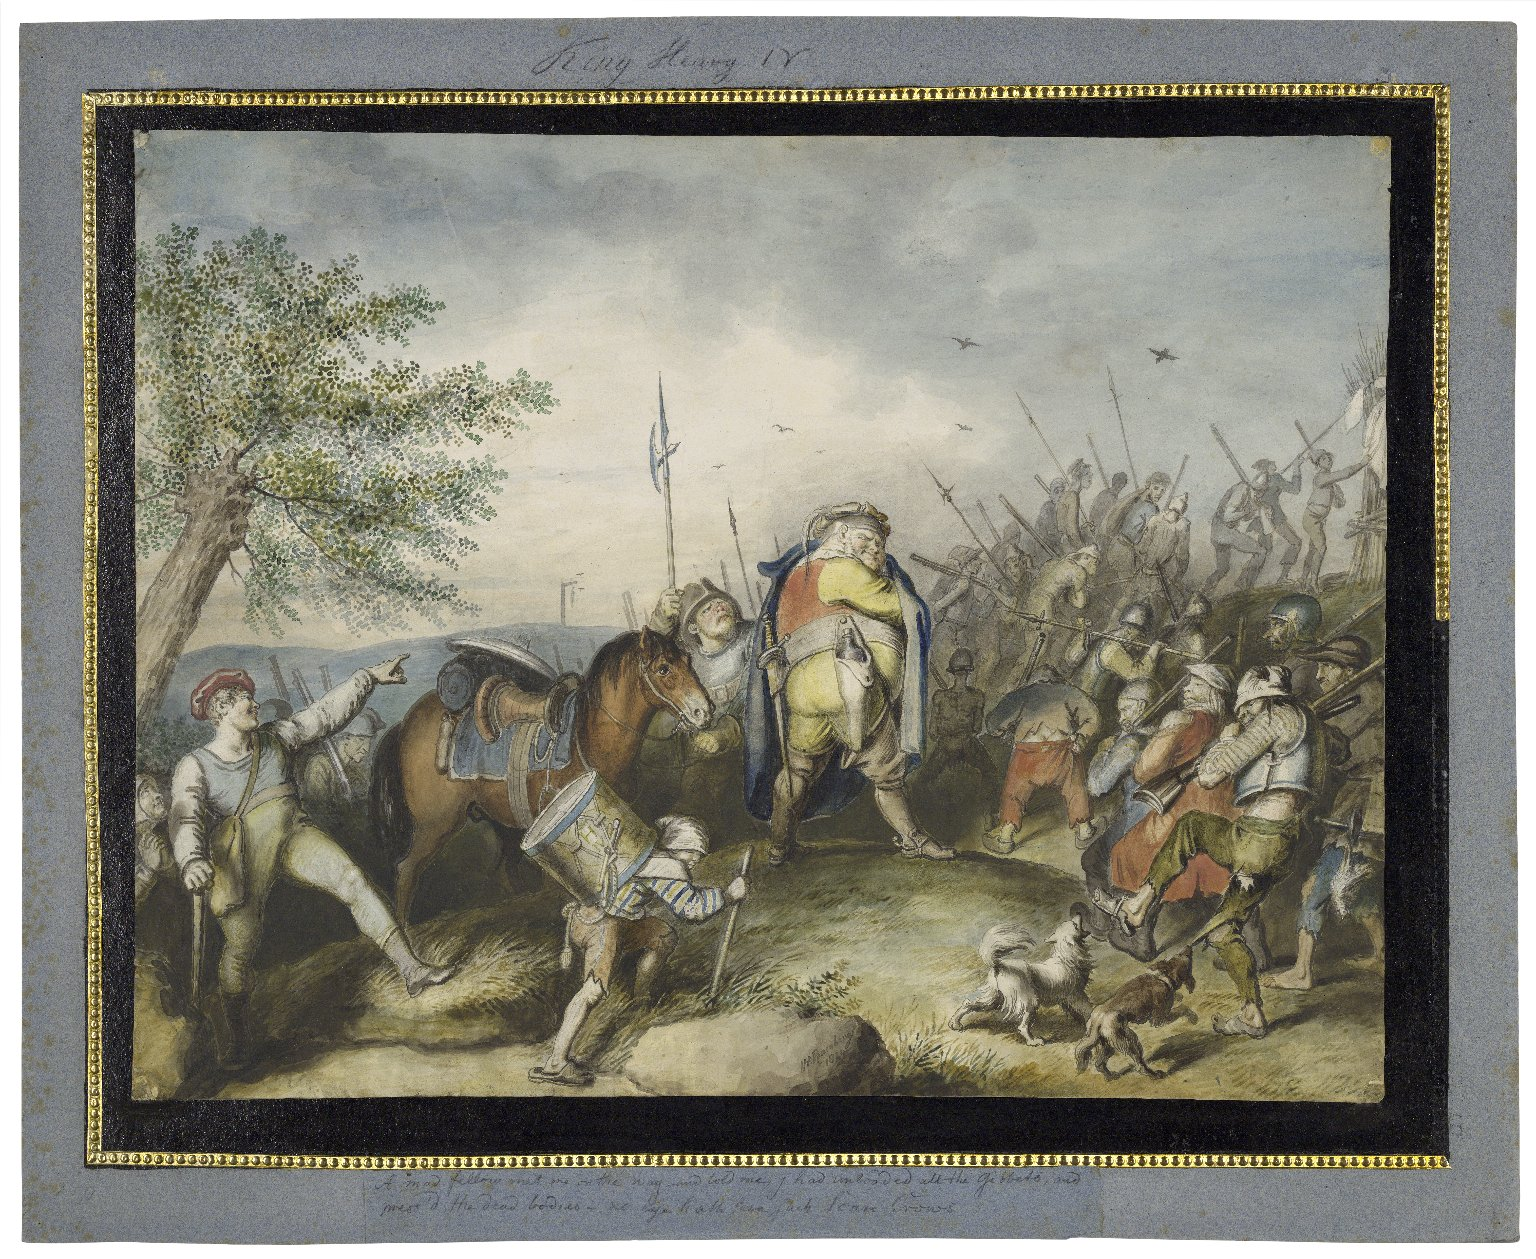 """King Henry IV, pt. 1, IV, 2, public road near Coventry: """"A mad fellow met me on the way, and told me, I had unloaded all the gibbets, and mess'd the dead bodies, no eye hath seen such scare crows"""" [graphic] / [Johann Heinrich Ramberg]."""